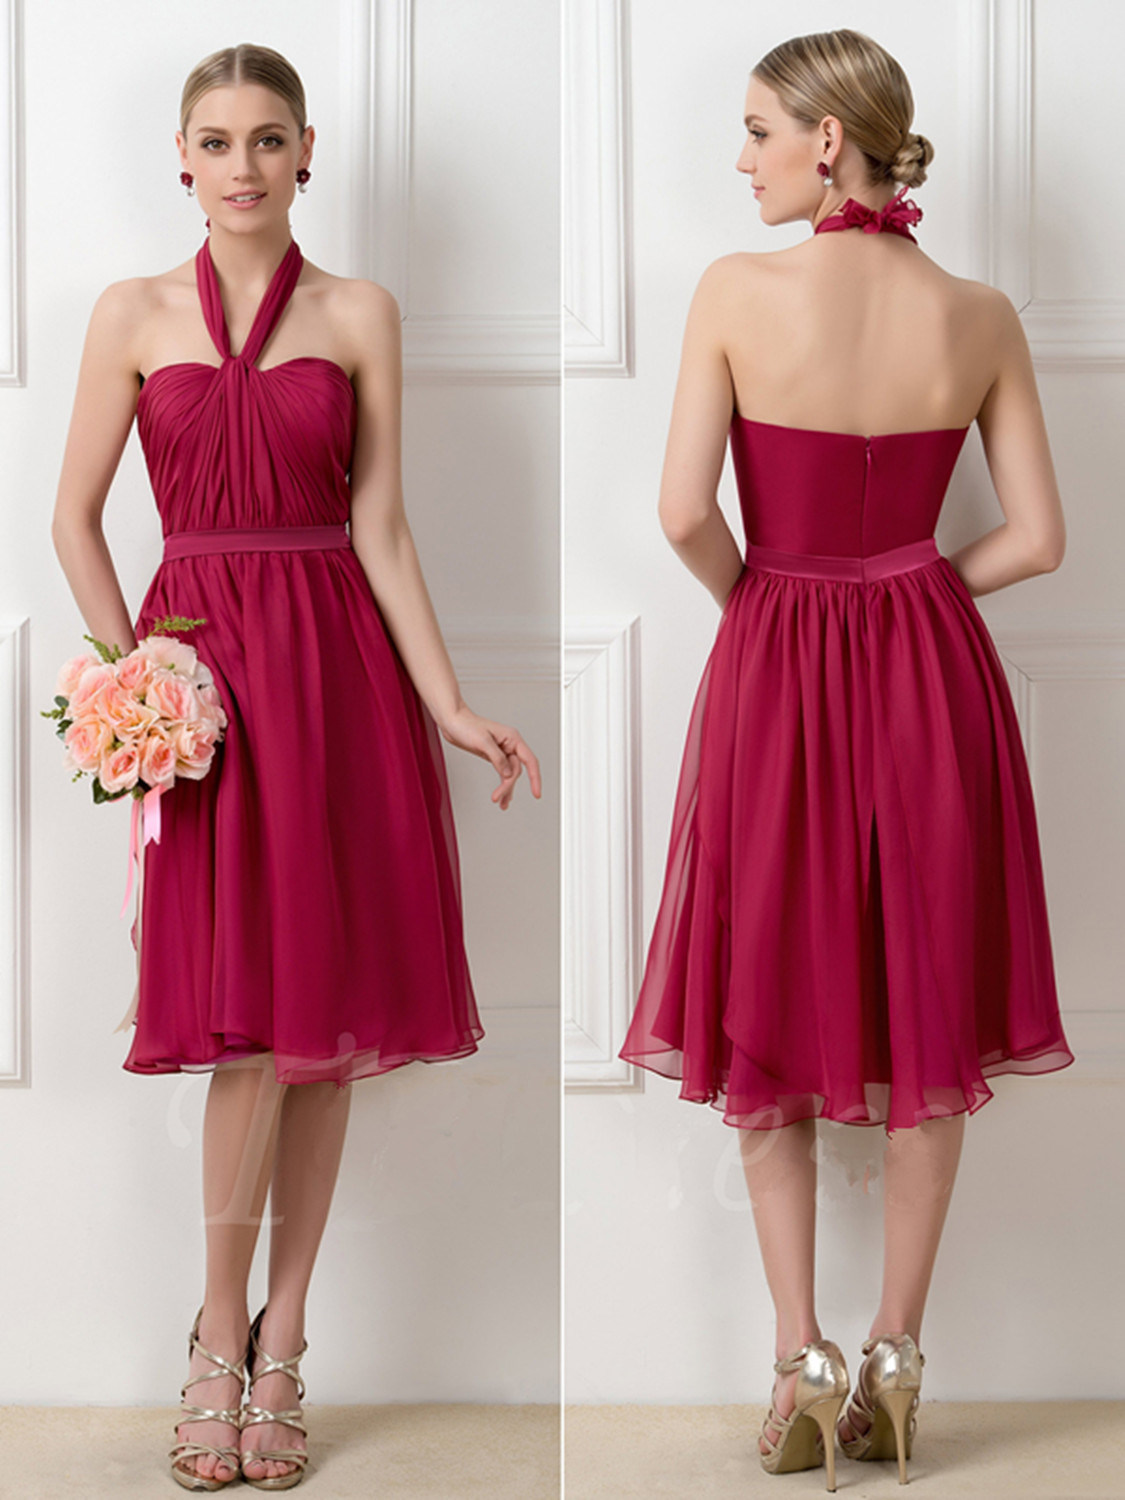 A-Line Tea-Length Convertible Short Burgundy Bridesmaid Dress (Dream-100019)